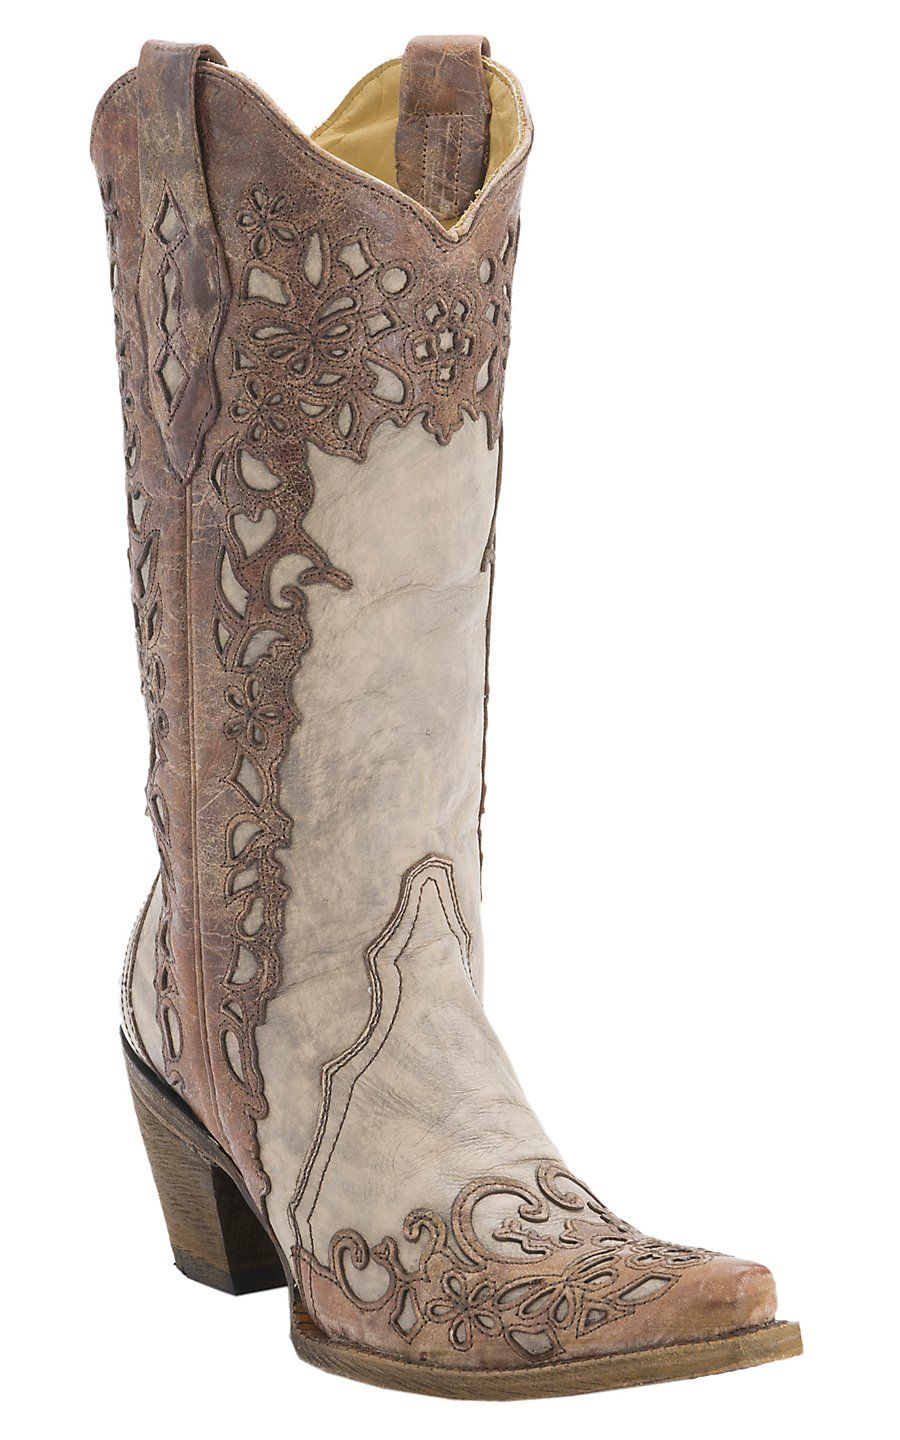 Womens Sand Flower Embroidery Distressed Western Leather Cowgirl Boots Snip Toe